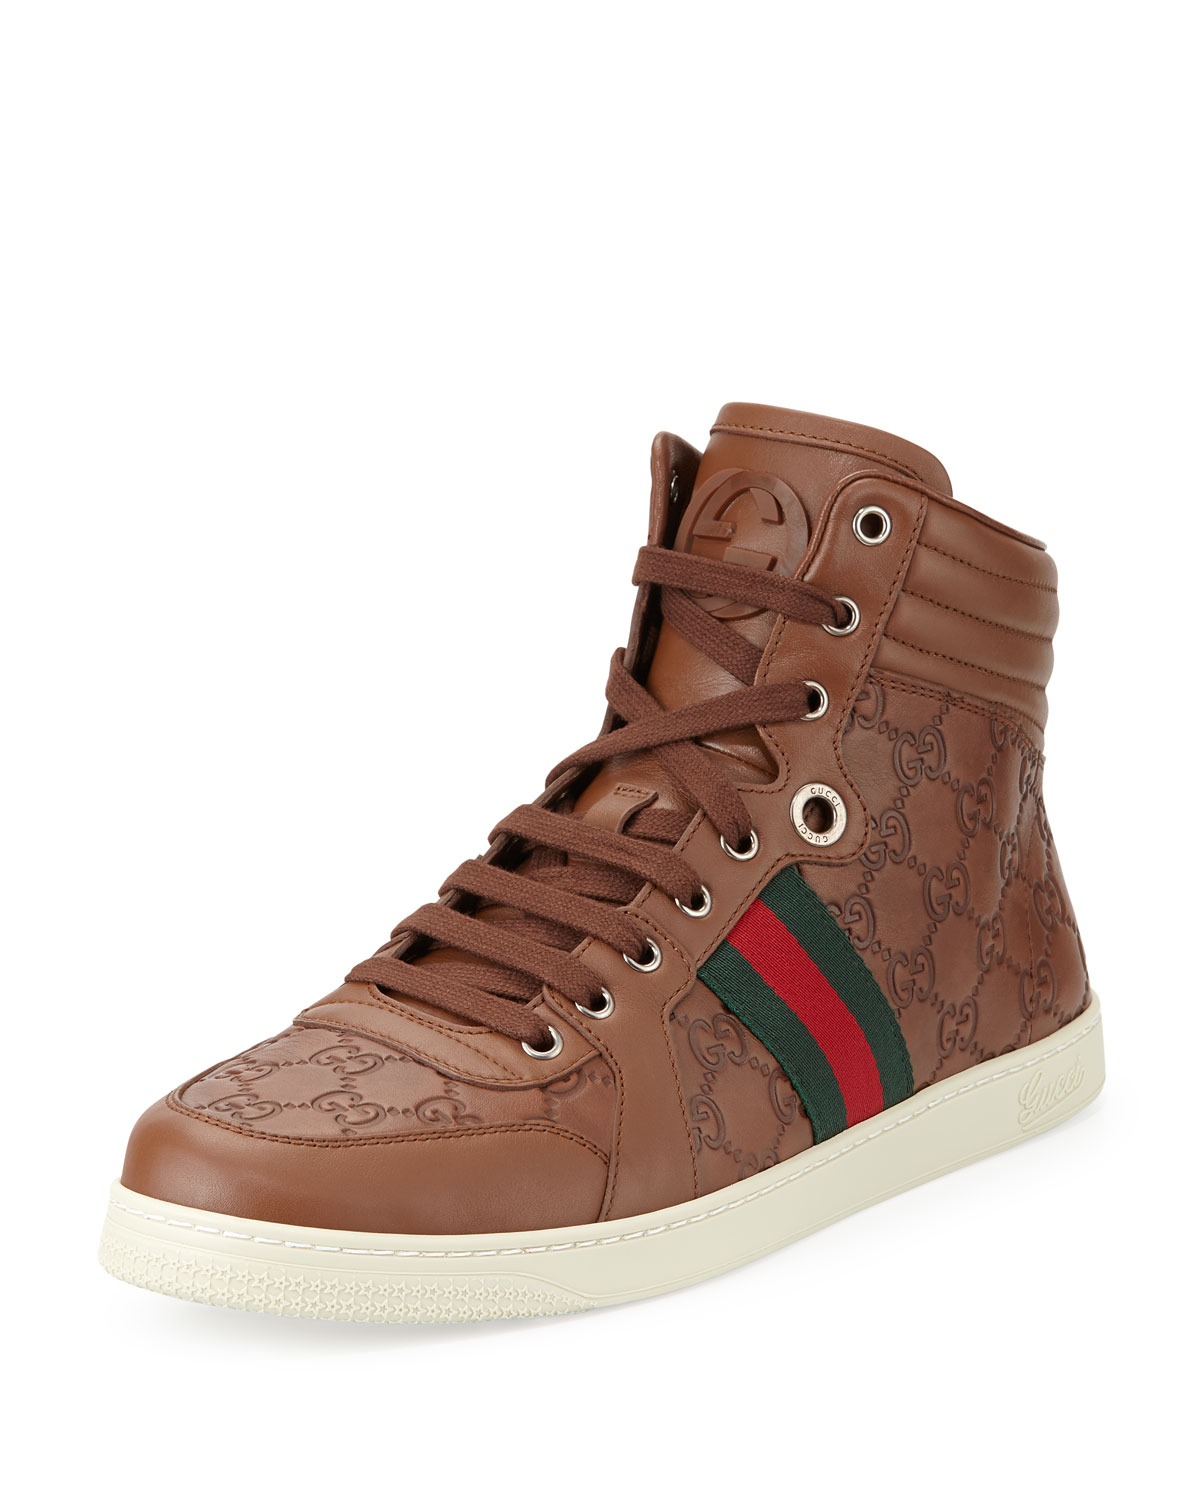 gucci leather high top sneakers in brown for men lyst. Black Bedroom Furniture Sets. Home Design Ideas